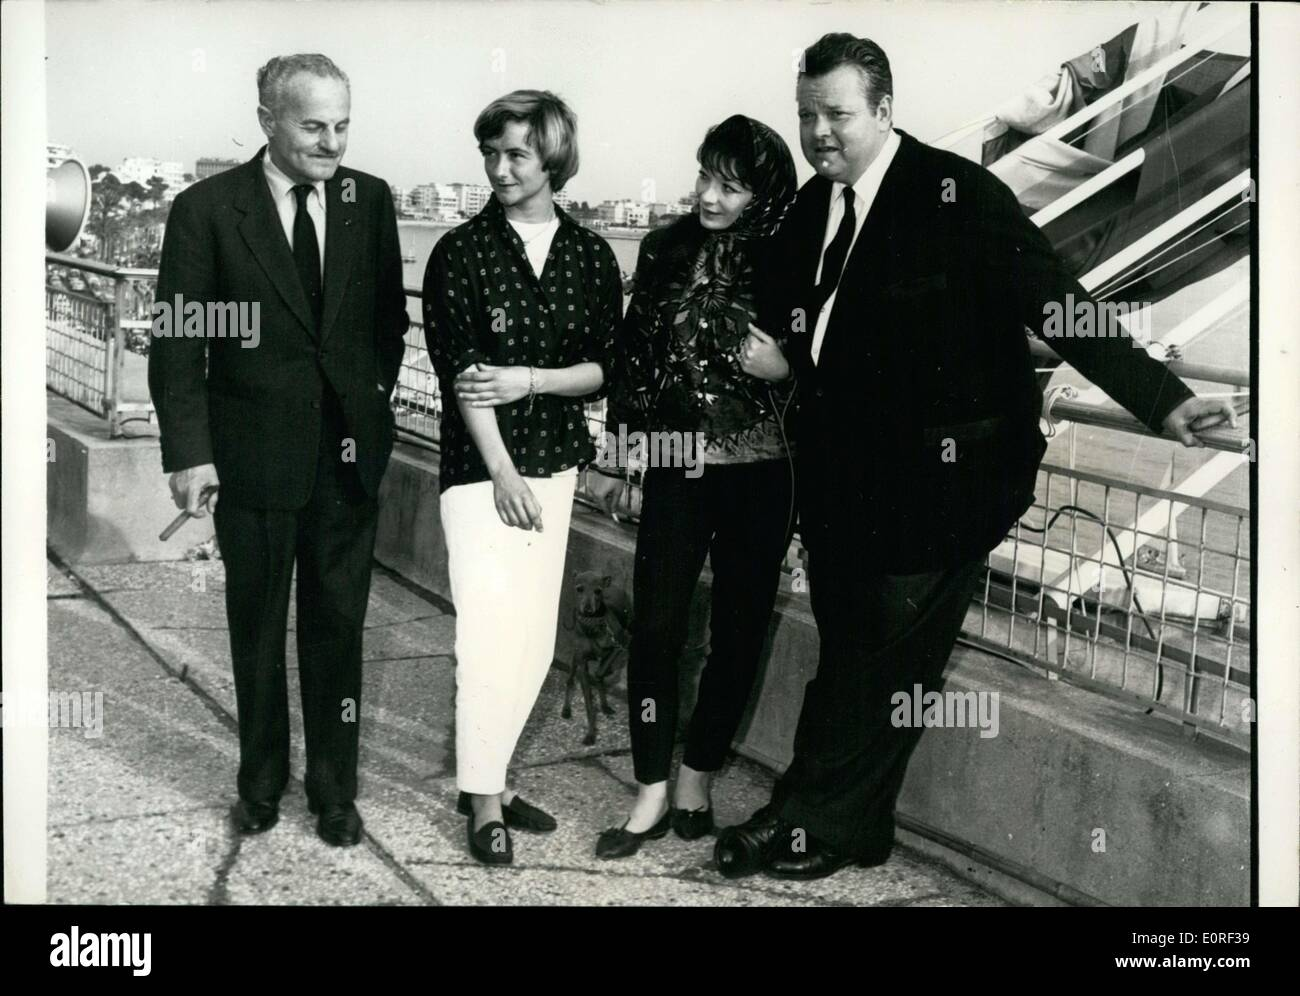 May 04, 1959 - They were photographed on the terrace of the Carlton Hotel yesterday. Orson Welles movie ''Compulsion'' had great success at the Cannes Film Festival. - Stock Image